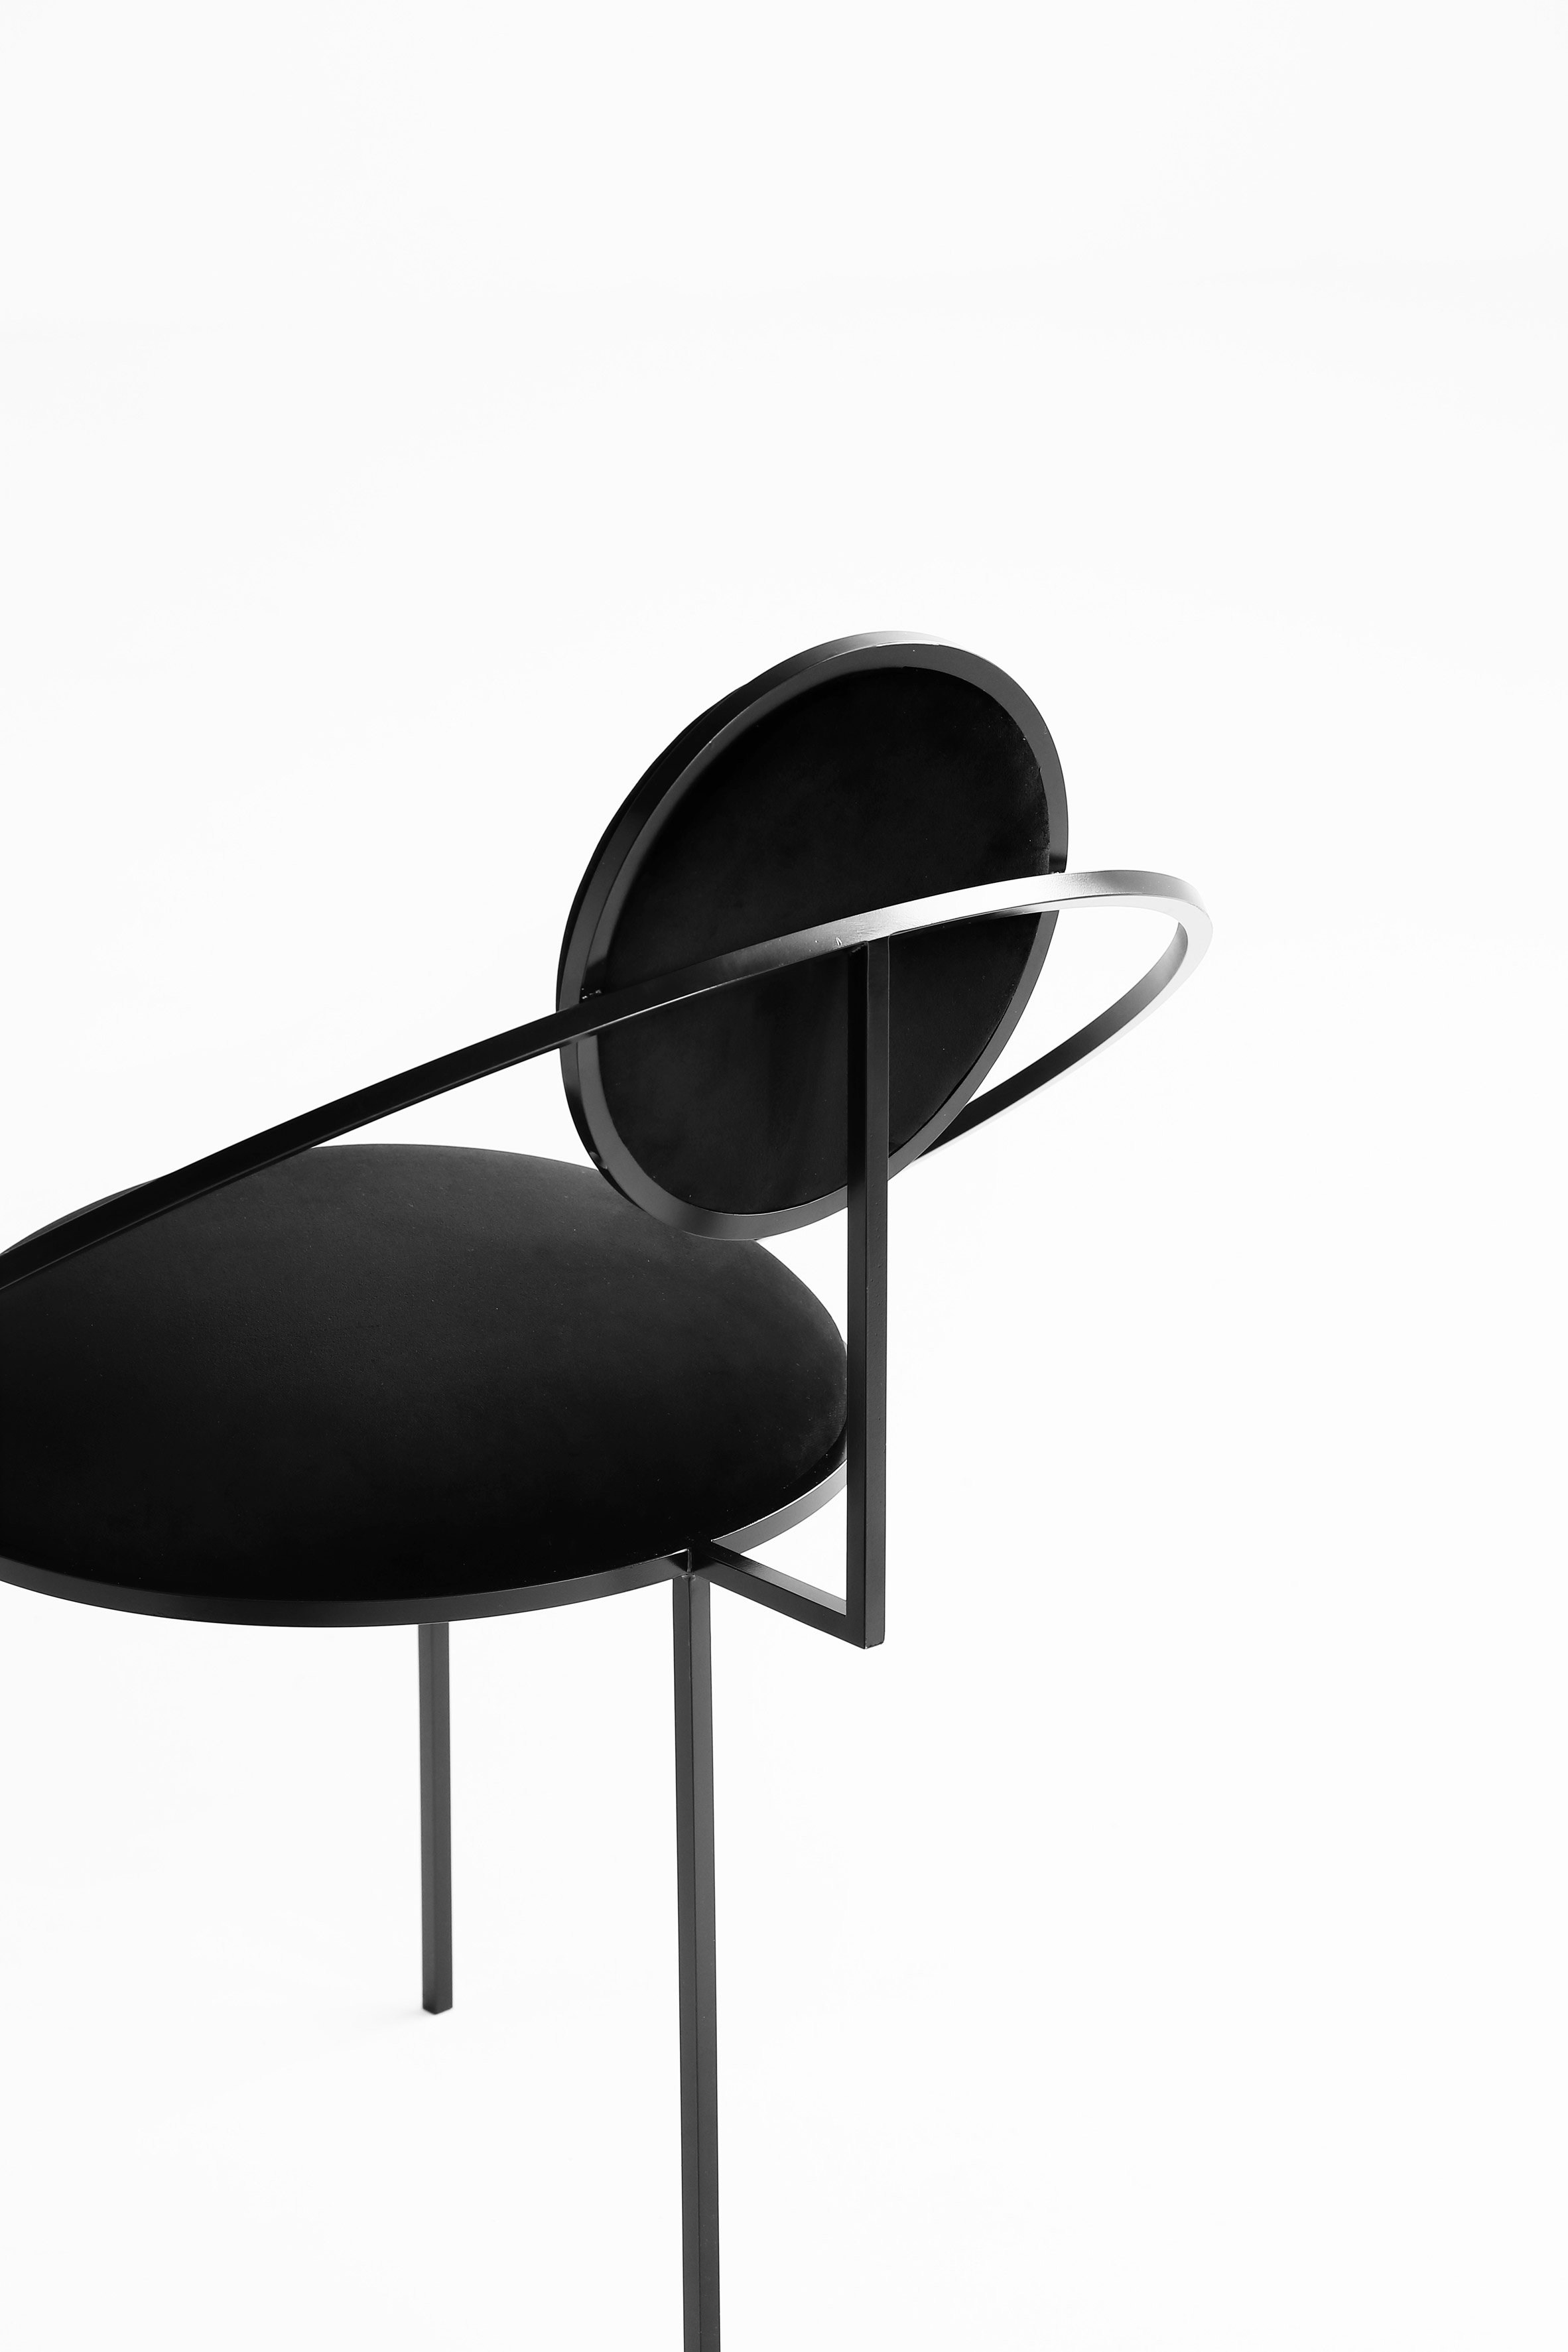 Lara Bohinc takes cues from celestial forms for first seating collection插图5